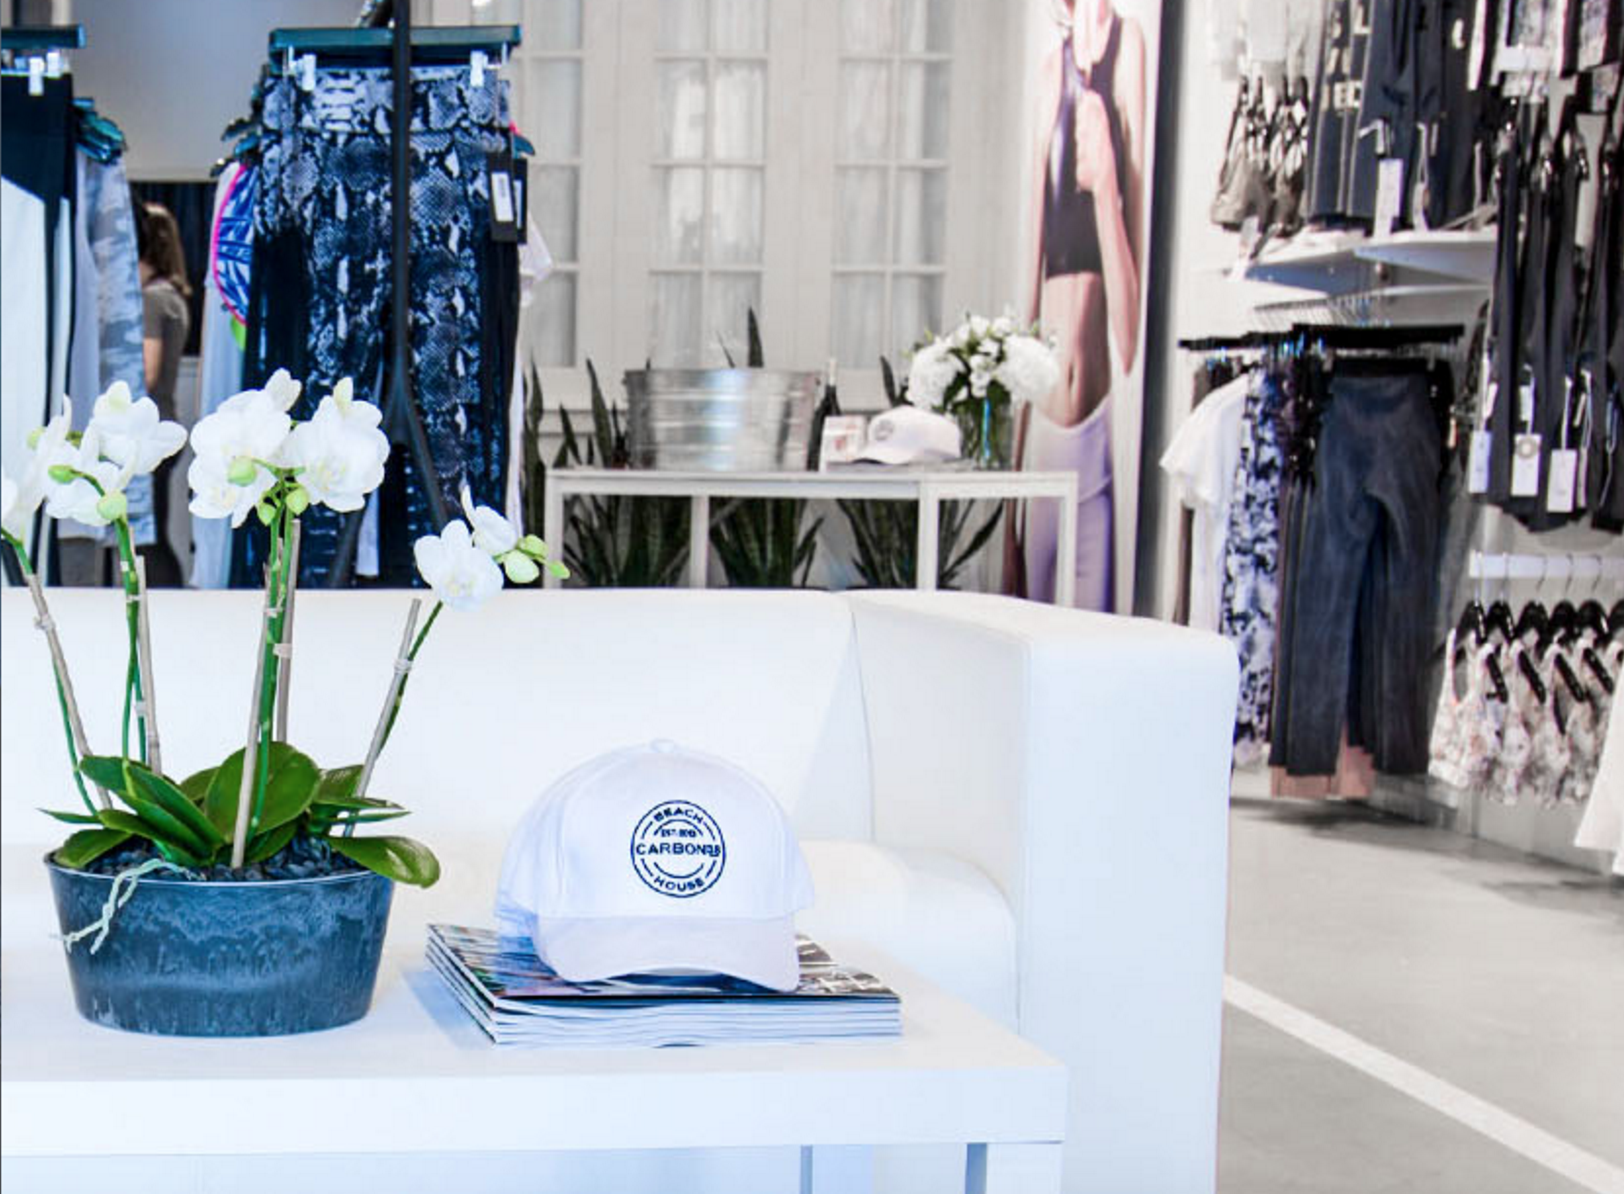 Carbon 38 Bridgehampton pop-up shop